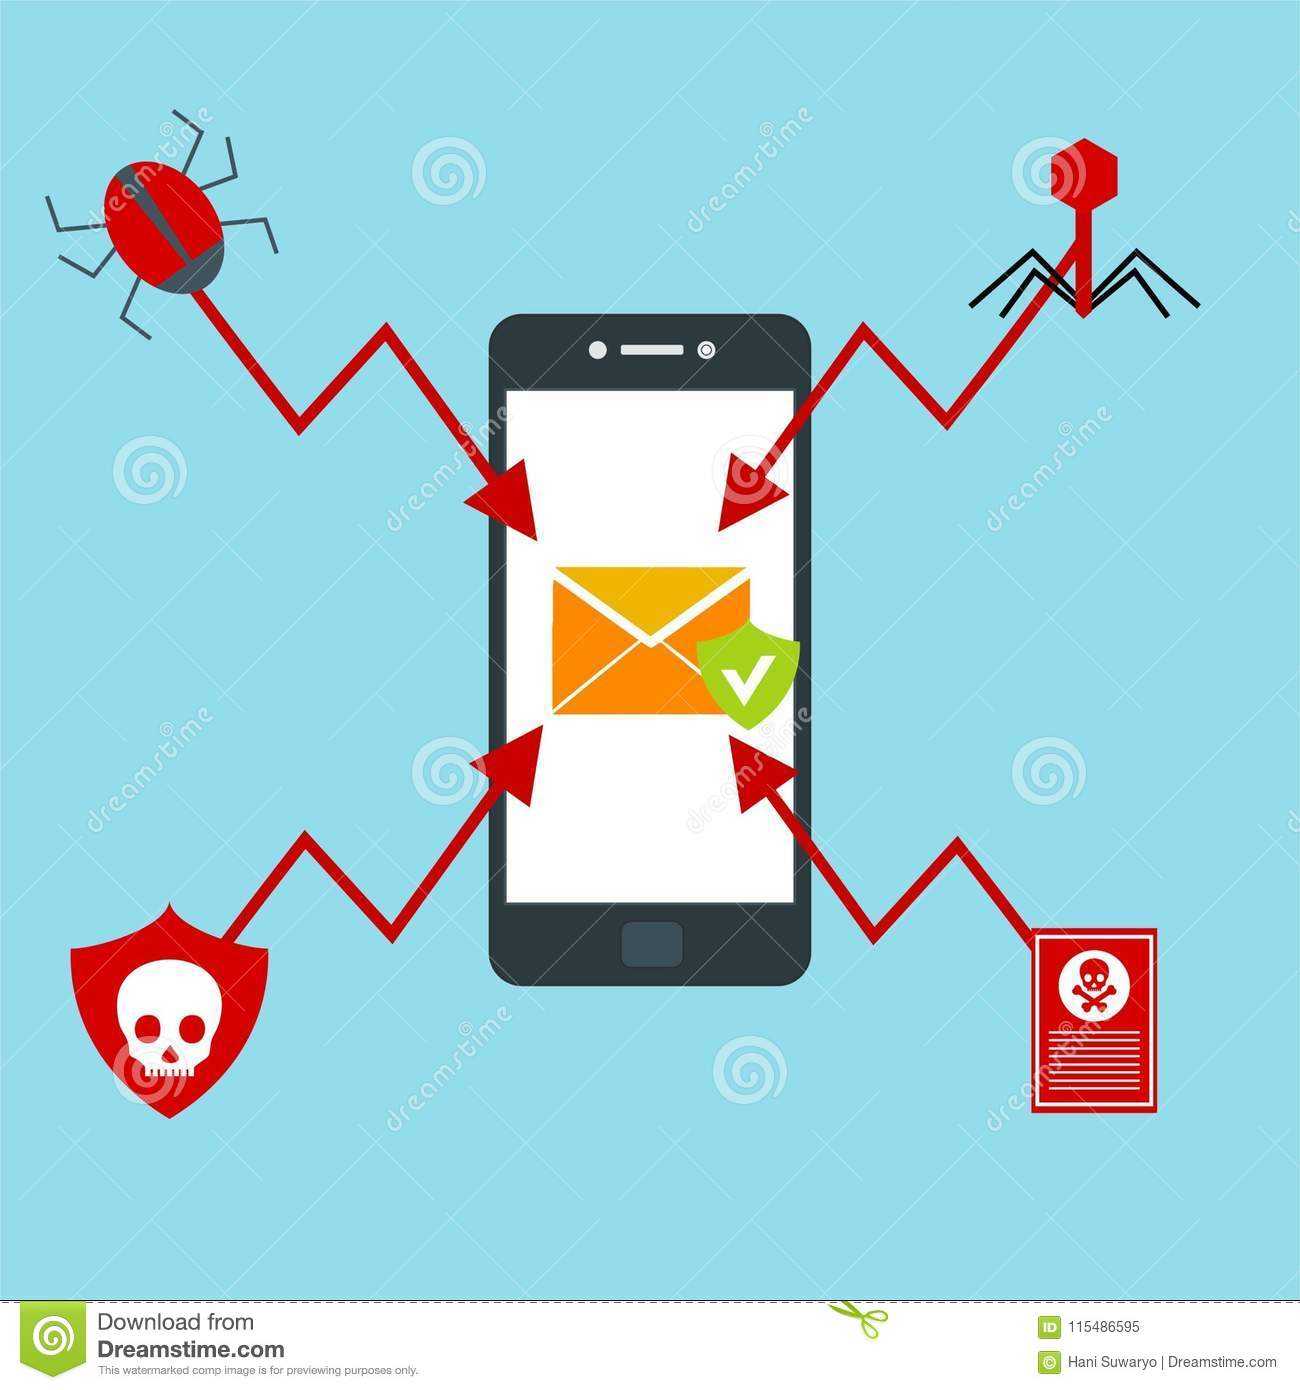 Alert notification on smartphone vector, malware concept, spam data, fraud internet error